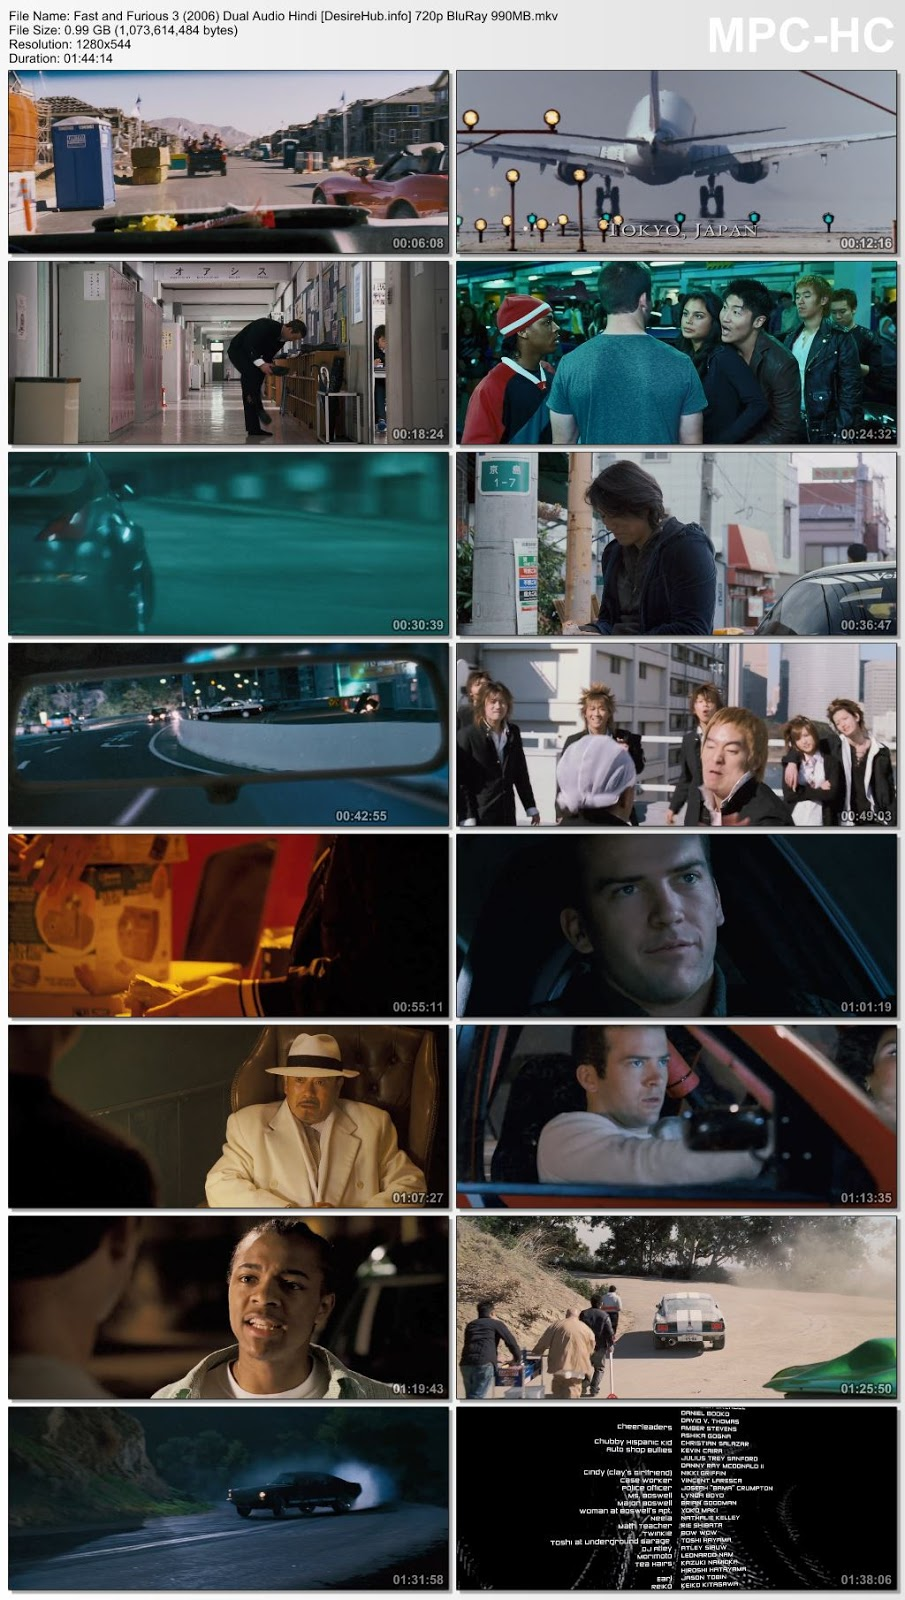 Fast and Furious 3 : Tokyo Drift 2006 Dual Audio Hindi 720p BluRay 990MB Desirehub